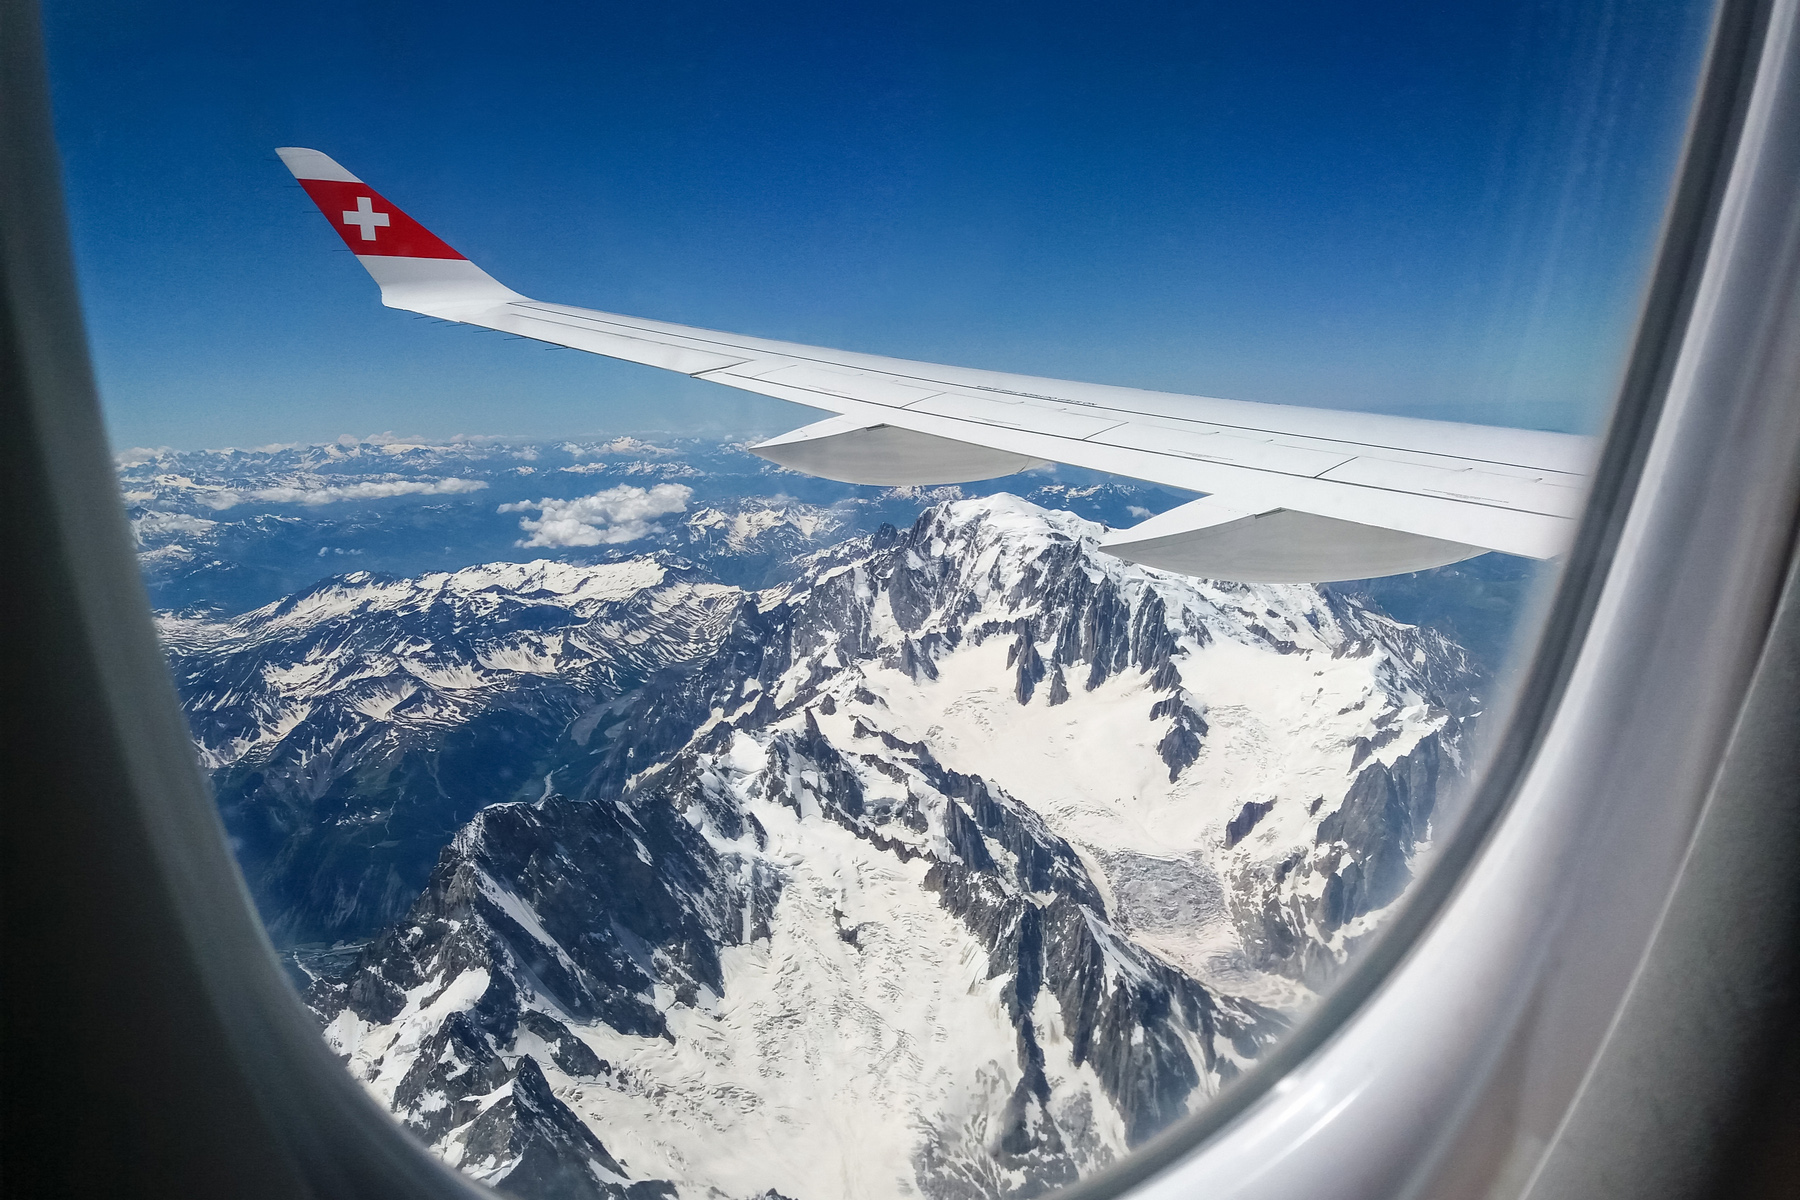 Swiss Air Lines plane over the Alps